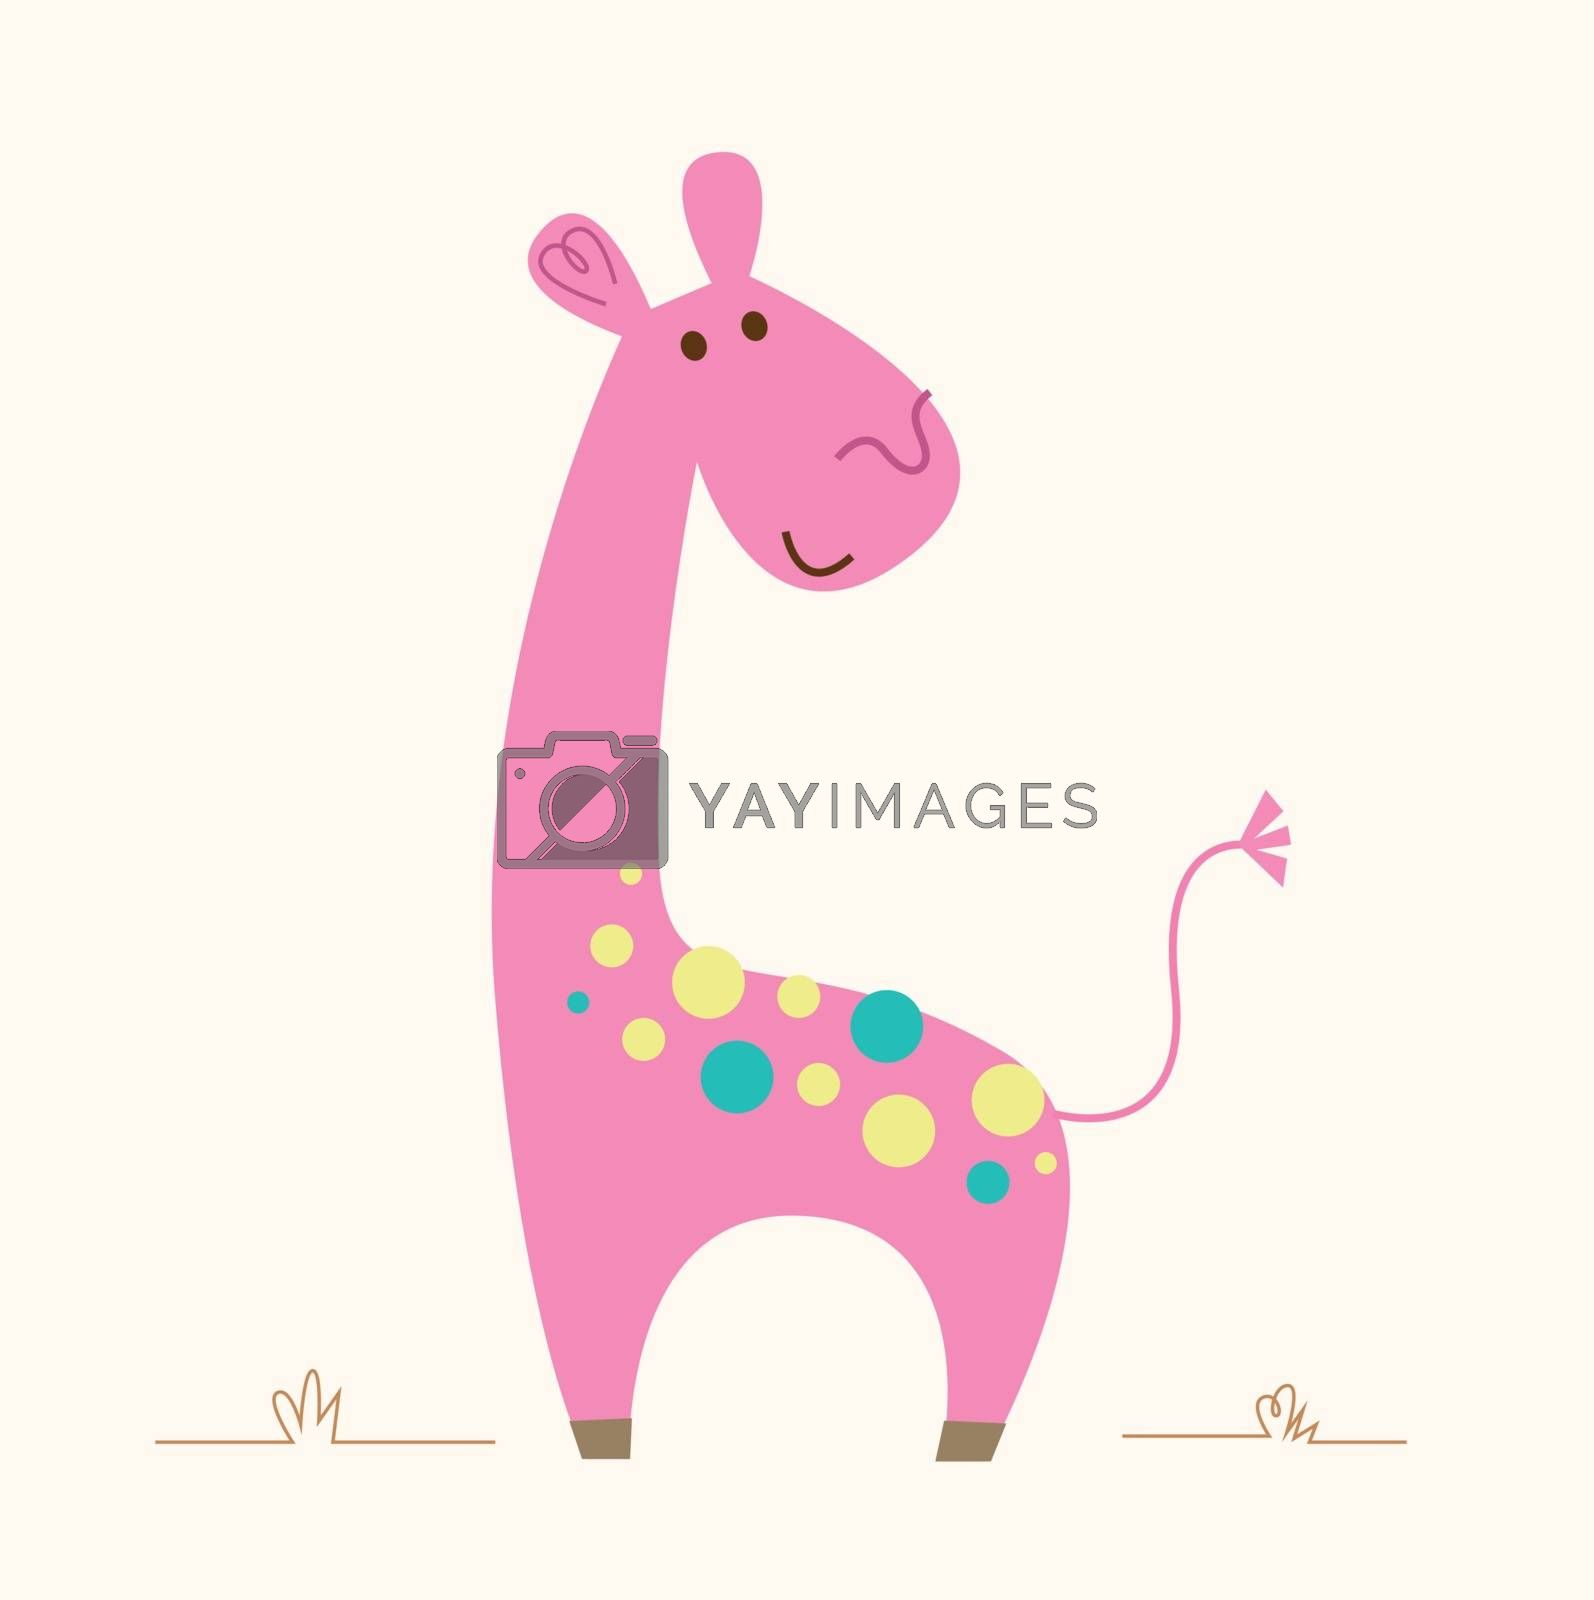 Cute pink Giraffe character for baby room by Lordalea